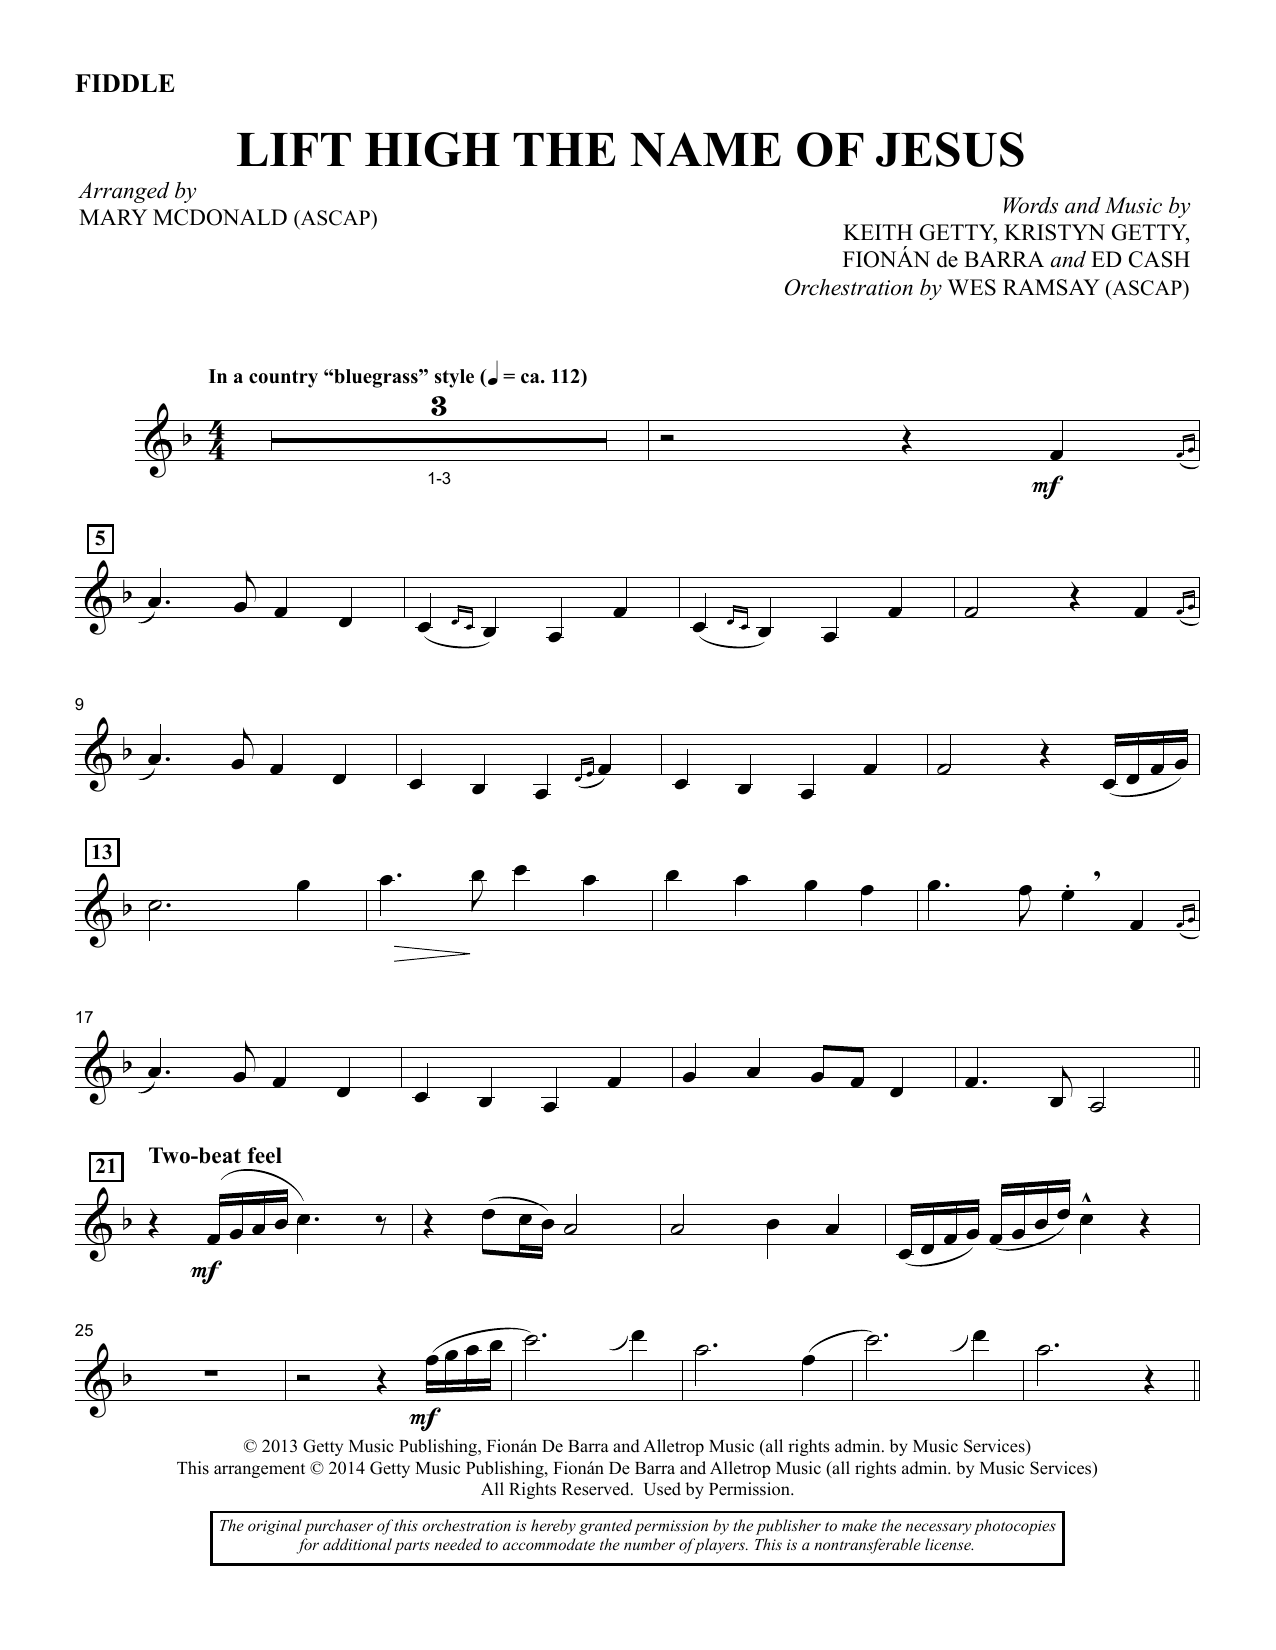 M McDonald Lift High the Name of Jesus - Fiddle sheet music notes and chords. Download Printable PDF.